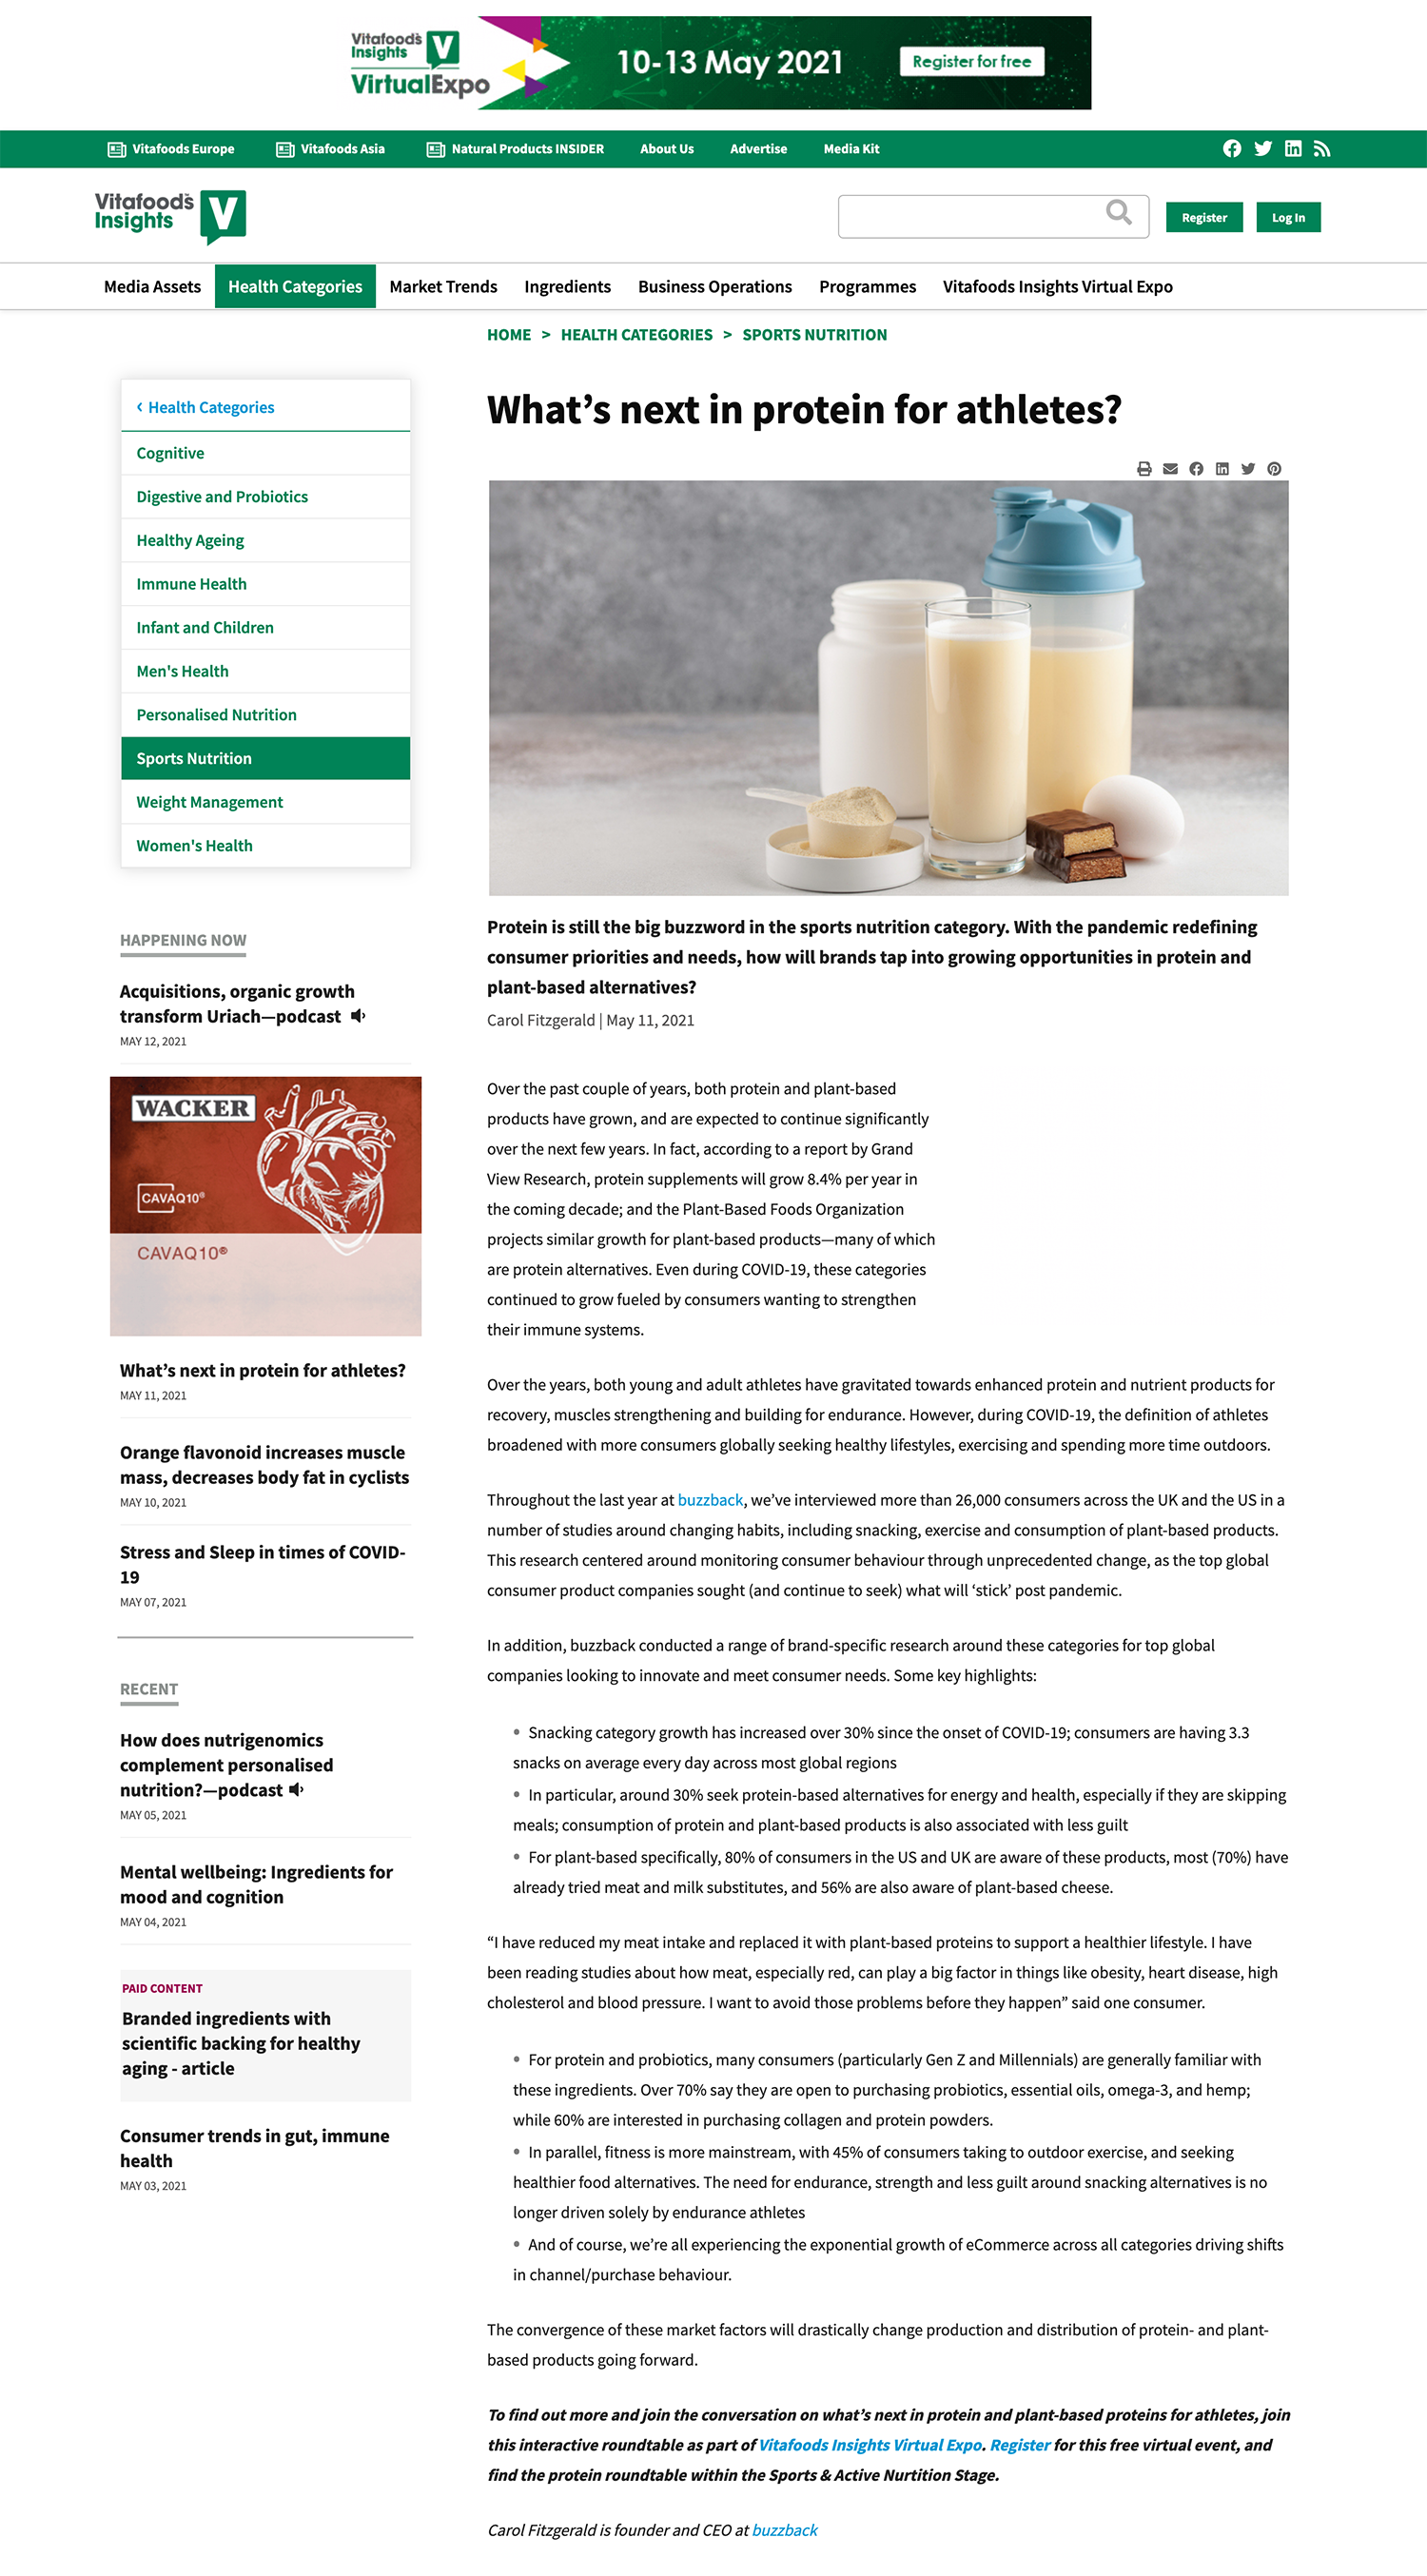 Vitafoods Insights - Whats next in protein for athletes